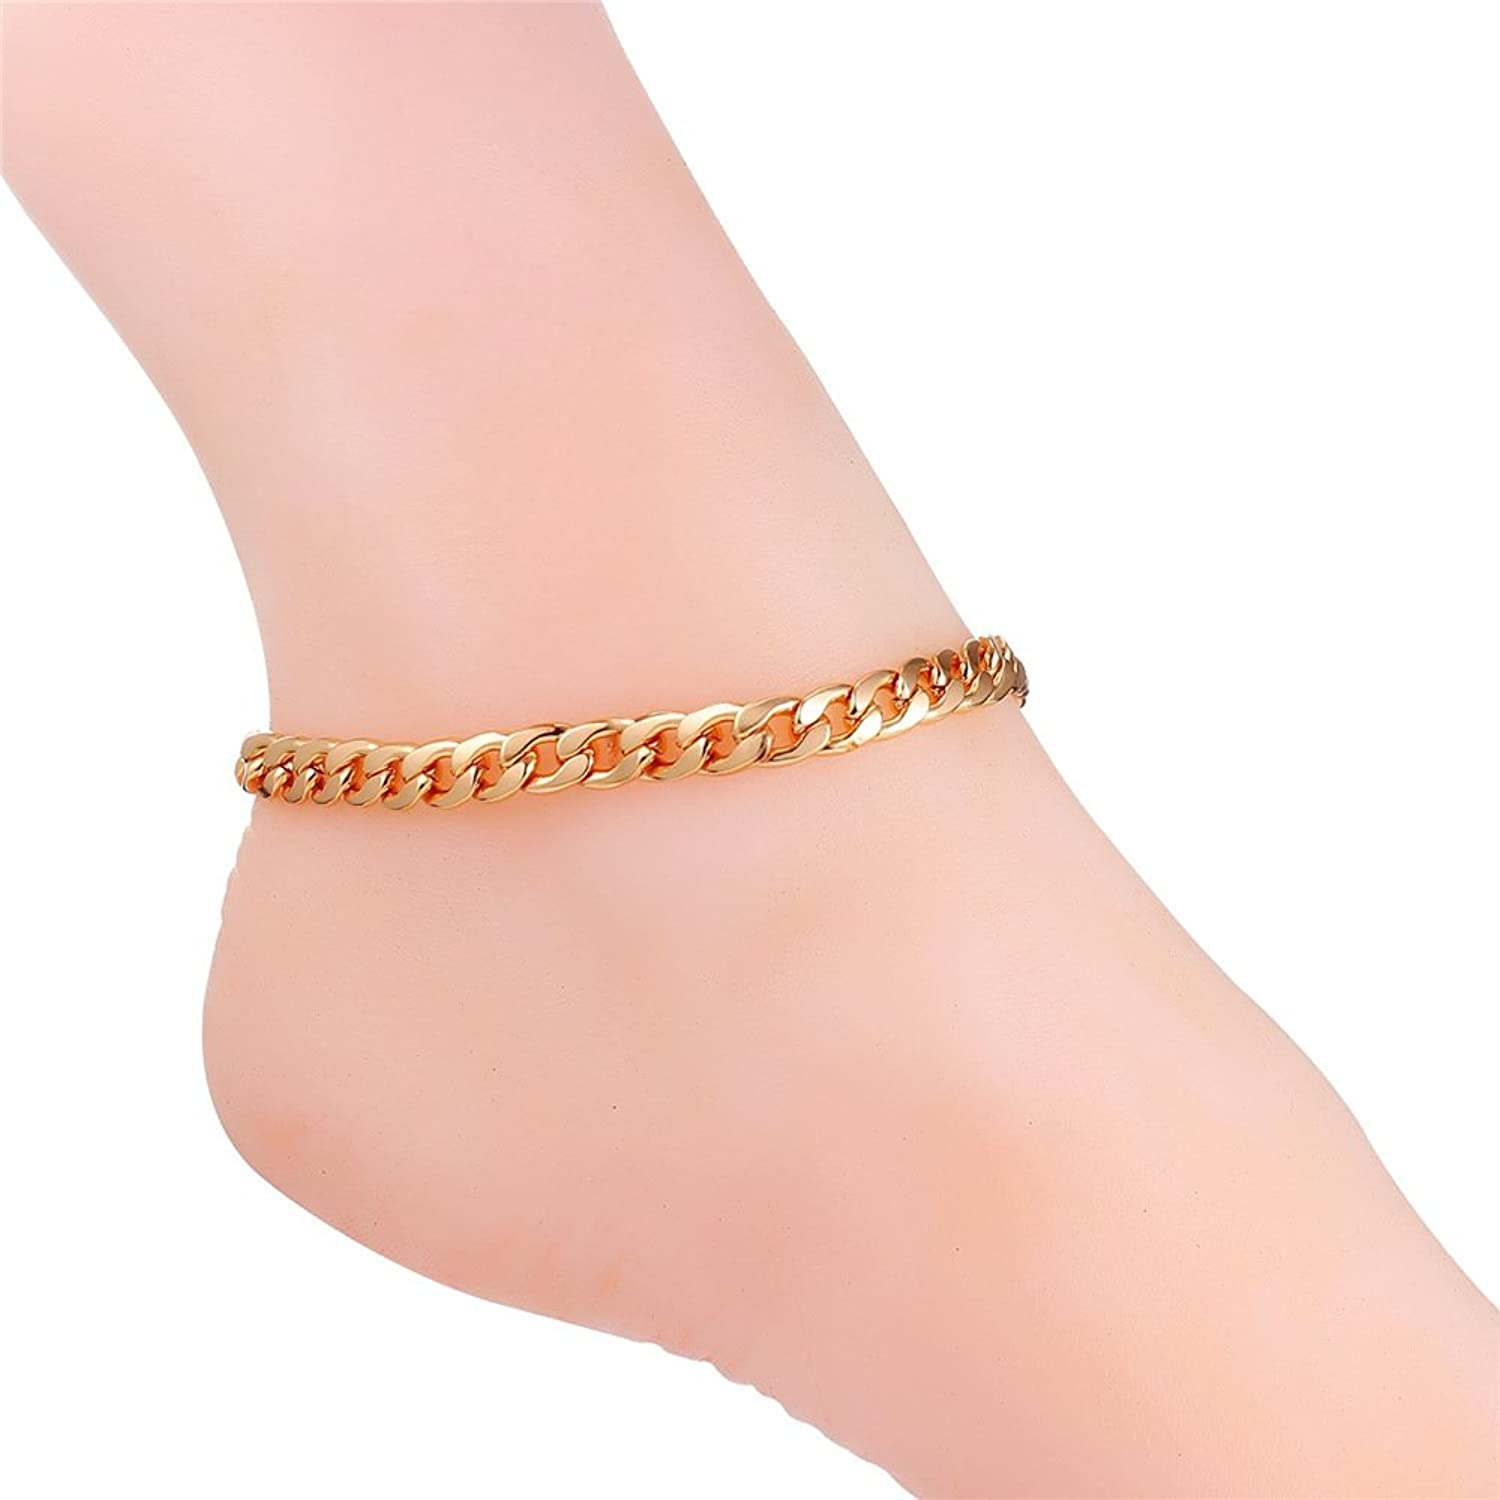 delicate gold anklet missworldlondon single crystal charm spirits layred doble layered chain products free